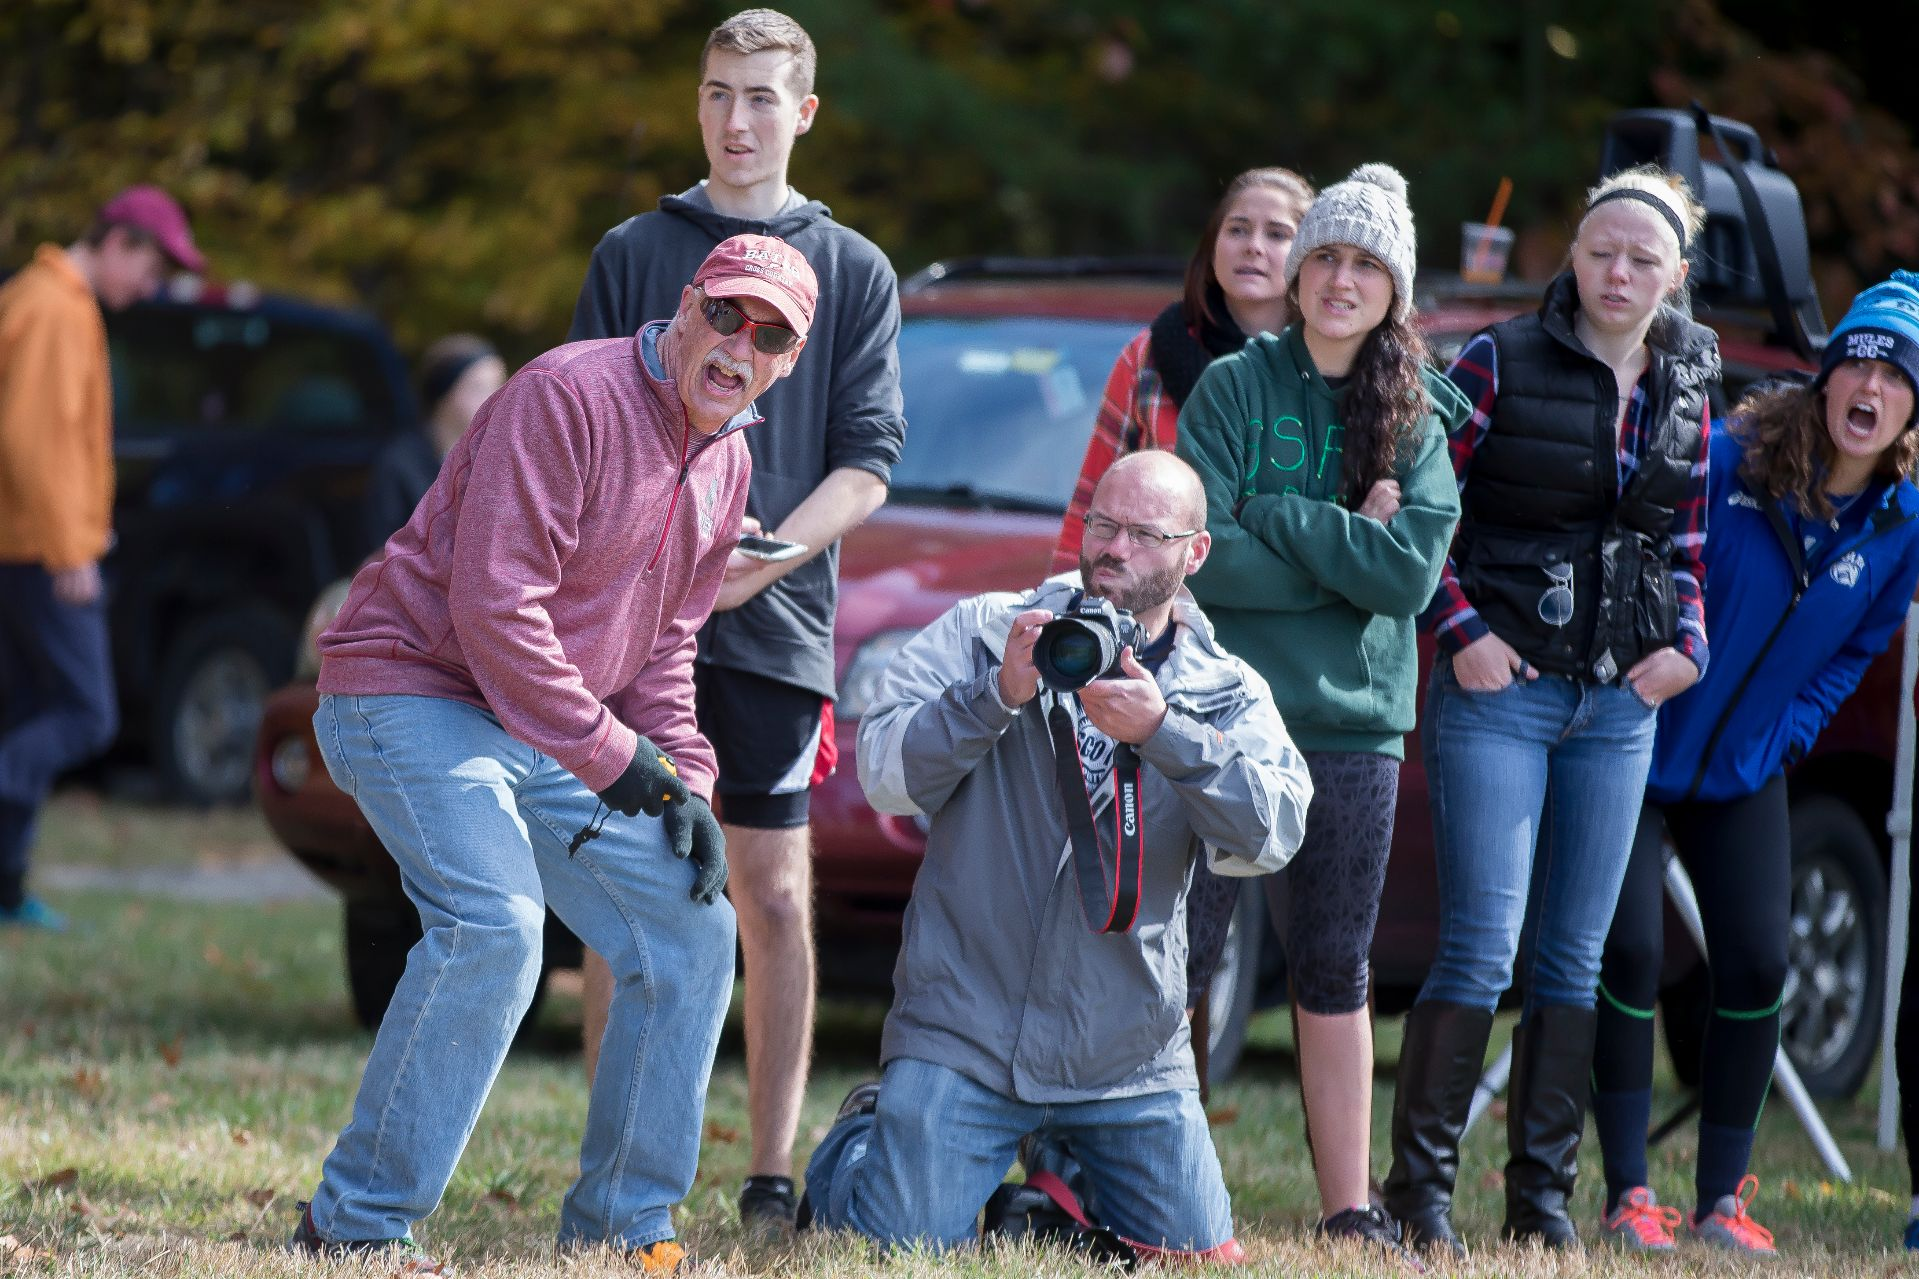 NEW GLOUCESTER, Maine -- First-year phenom James Jones won the individual title as the Bates men's cross country team placed second out of 10 teams Saturday at the Maine State Championship.Jones (Colorado Springs, Colo.) outkicked Colby junior David Chelimo to the finish line, finishing Bates' home 8-kilometer course at Pineland Farms in 25:17.3 to Chelimo's 25:20.2, two of the fastest times ever run on the course. Chelimo placed 10th at the 2015 NCAA Championship meet. Jones's time is the third-fastest ever run on the course, and the fastest by a Bates runner by a 36-second margin over alumni Mike Martin and two-time All-American Tully Hannan.Jones becomes the 18th Bates runner to win the state individual title since the men's meet began in 1968, and the first since John Stansel in 2014.No. 16 nationally ranked Colby, the runner-up to Bates a year ago, won its first state meet title since 1993, and its third all-time. The Mules scored 28 points, followed by Bates (45), Bowdoin (49), Southern Maine (131), UMaine-Farmington (165), Thomas (202), Maine Maritime (209), St. Joseph's (209), UMaine-Presque Isle (235) and Unity (304).Senior captain Evan Ferguson-Hull (West Hartford, Conn.) earned his second consecutive all-state (top seven) honors, placing seventh out of 122 men in 25:38.3, Bates' second-fastest time ever recorded at Pineland.With each team's top five runners scoring, rounding out Bates' scoring were senior captain Joe Doyle (Glastonbury, Conn.) in 11th (26:01.4), junior Ben Tonelli (Seattle, Wash.) in 12th (26:04.0) and junior Zach Magin (West Hartford, Conn.) in 14th (26:04.0). Senior Nick Orlando (Milton, Mass.) in 15th (26:09.0) and junior Matt Morris (Rockville, Md.) in 16th (26:13.9) were Bates' displacers. Three additional Bobcats finished among the top 20 individuals: junior Stephen Rowe (Gambier, Ohio) in 17th (26:23.7), senior captain Michael Horowicz (Montclair, N.J.) in 18th (26:27.7) and junior Jack Kiely (Severna Park, Md.) in 20th